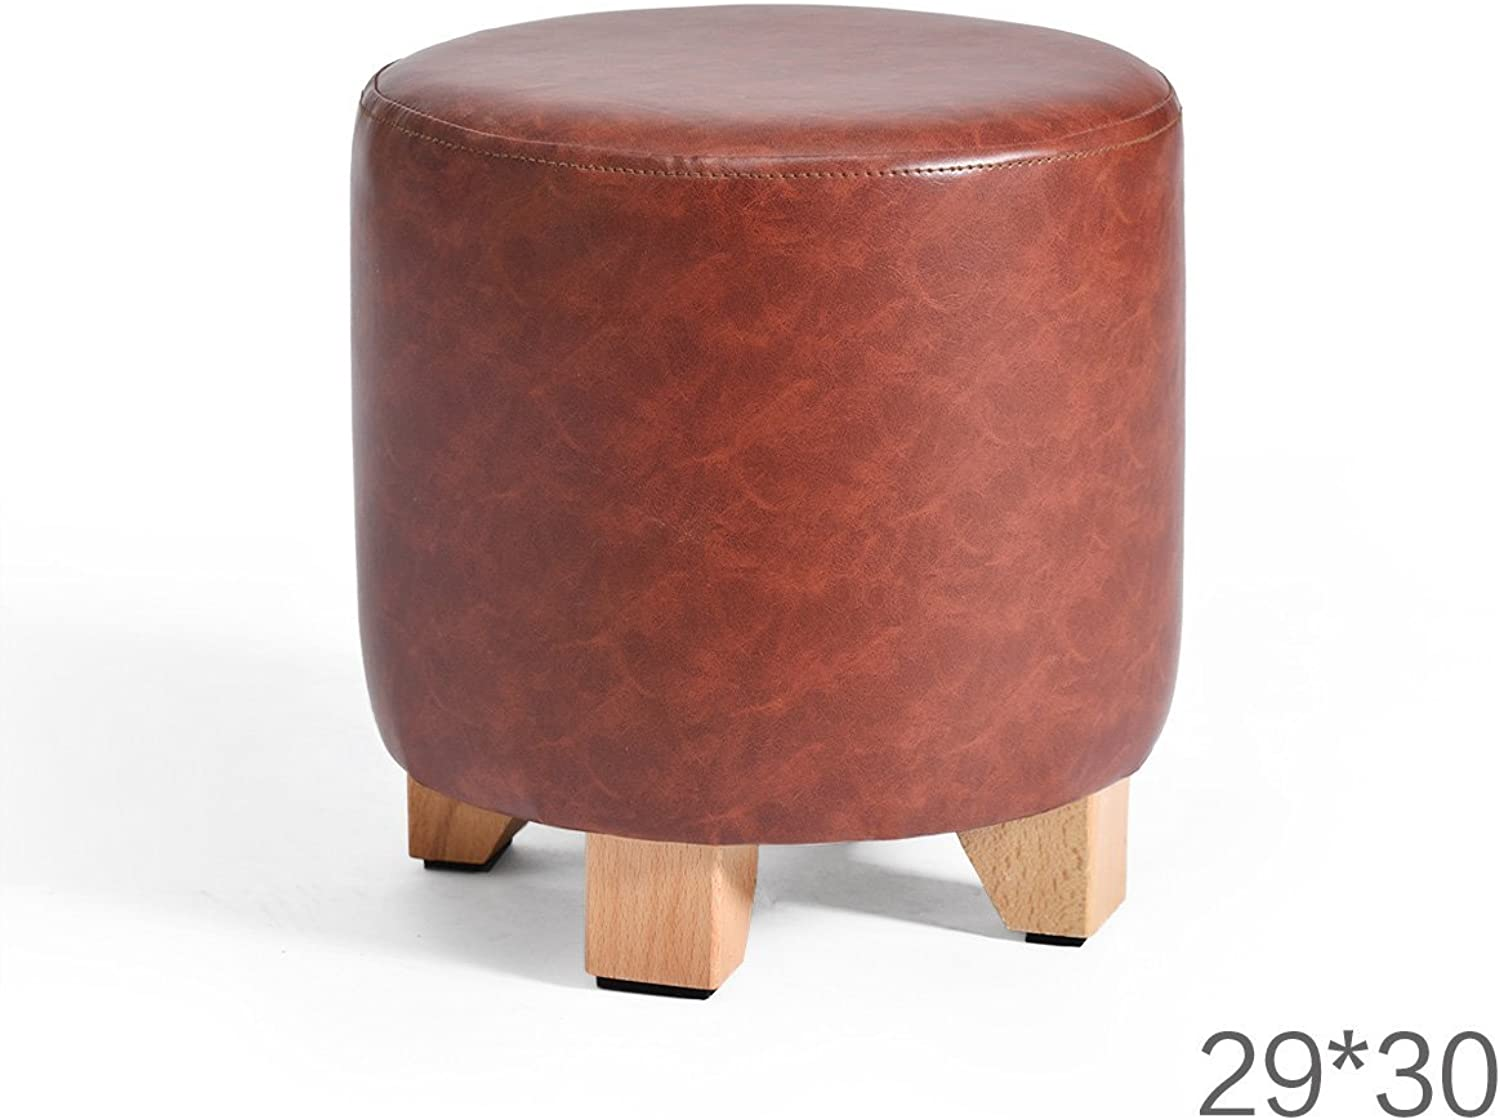 SMC Stool Solid Wood Leather Round European Style Simple Ideas Lightweight Comfortable Sofa Living Room Bedroom Stools shoes Change Stool (color   B)